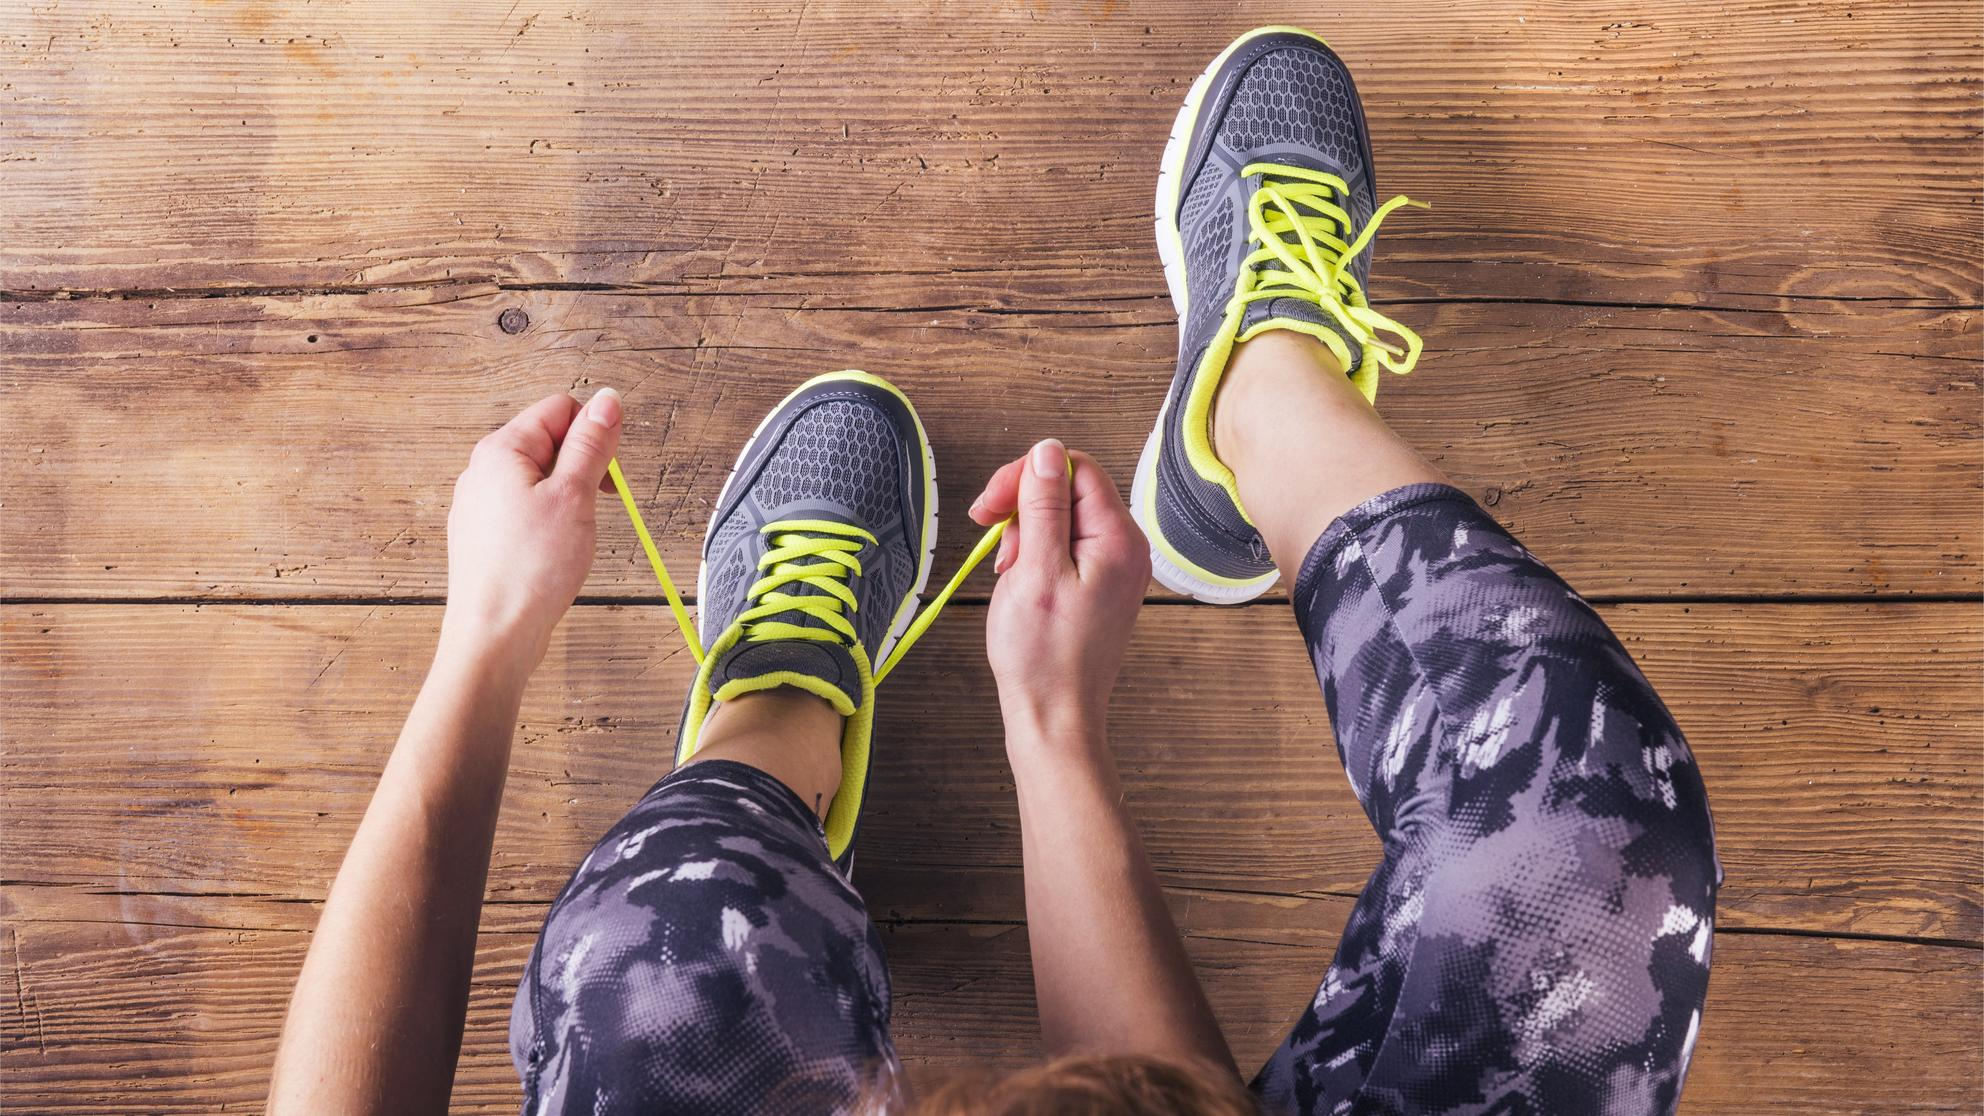 Science Just Figured Out Why Your Shoelaces Keep Coming Undone